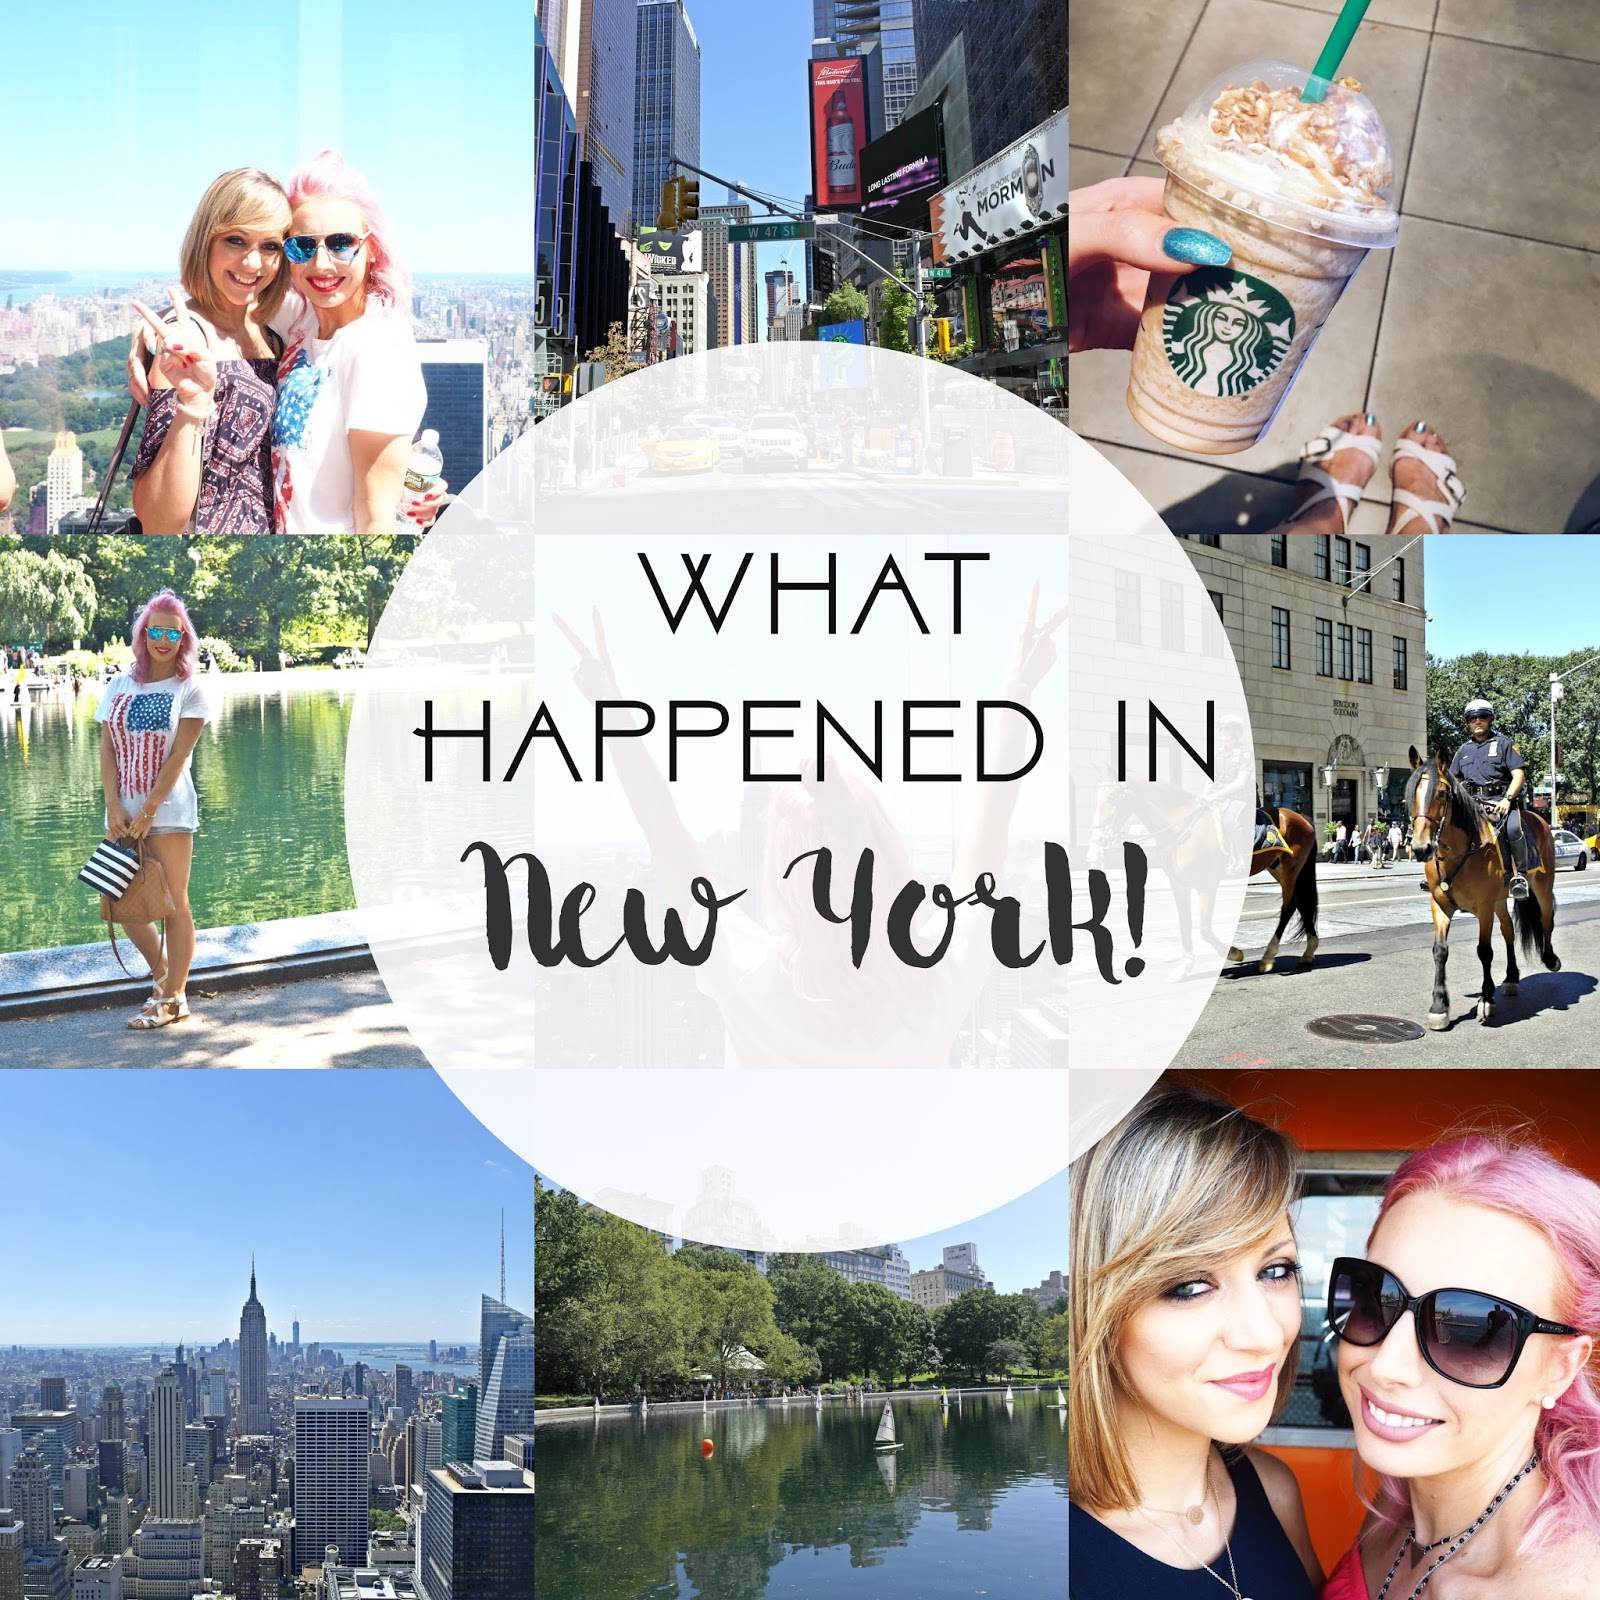 what happened in New York